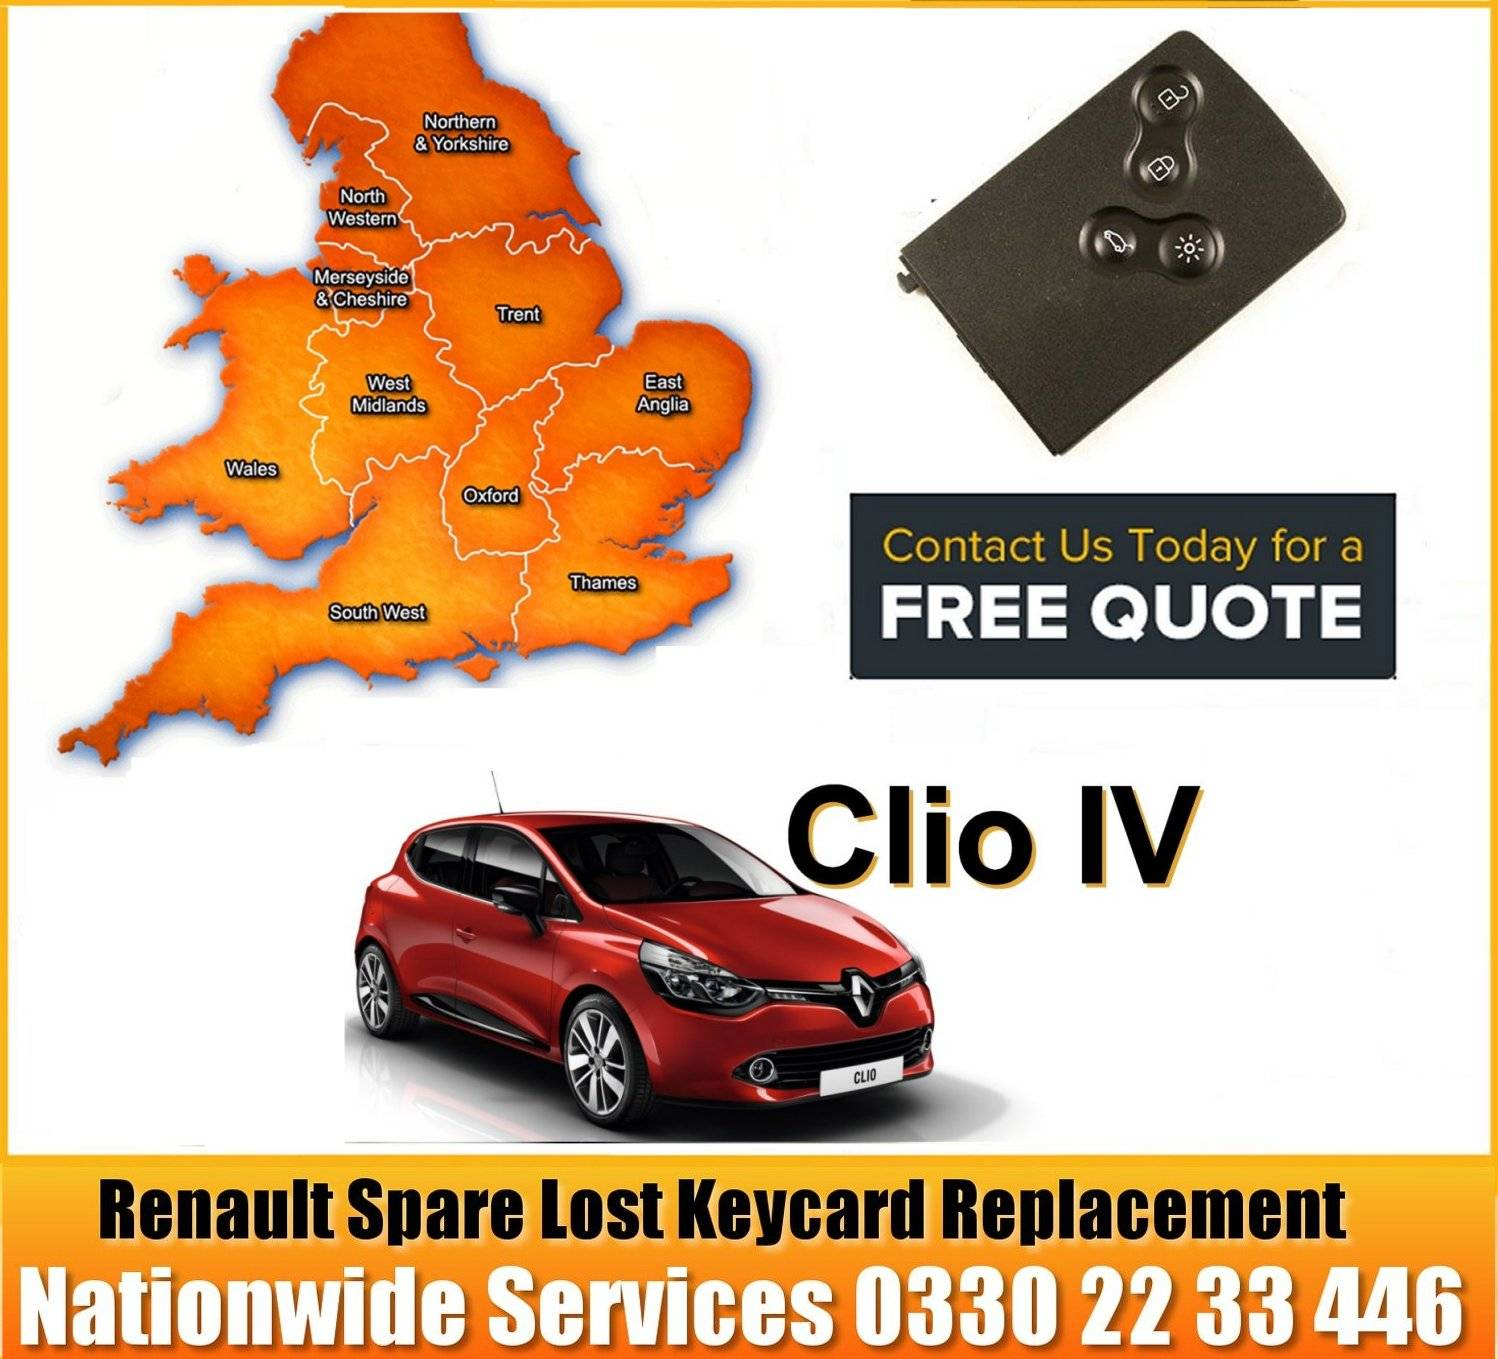 scenic 2011 all keys lost locked out Oliveston renault keycard replacement repair review